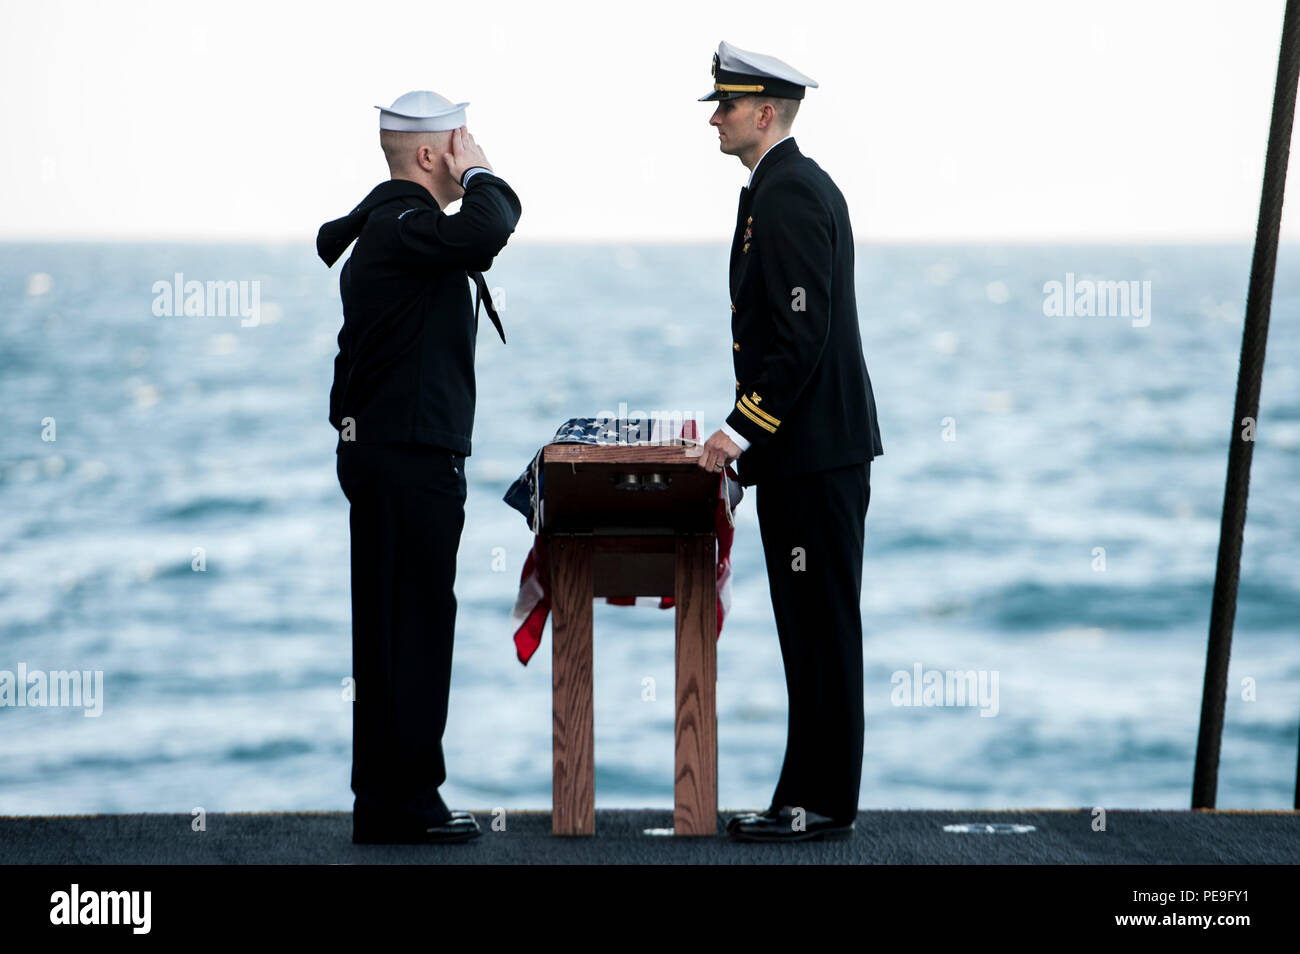 151118-N-GK939-096 ATLANTIC OCEAN (Nov. 18, 2015) Hospital Corpsman 3rd Class C. Lamacchia, left, and Lt. A. Urech participate in a burial at sea ceremony aboard aircraft carrier USS Harry S. Truman (CVN 75). Harry S. Truman Strike Group is deployed to support maritime security operations and theater security cooperation efforts in the U.S. 5th and 6th Fleet areas of operation. (U.S. Navy photo by Mass Communication Specialist Seaman L. A. Preston/Released) - Stock Image